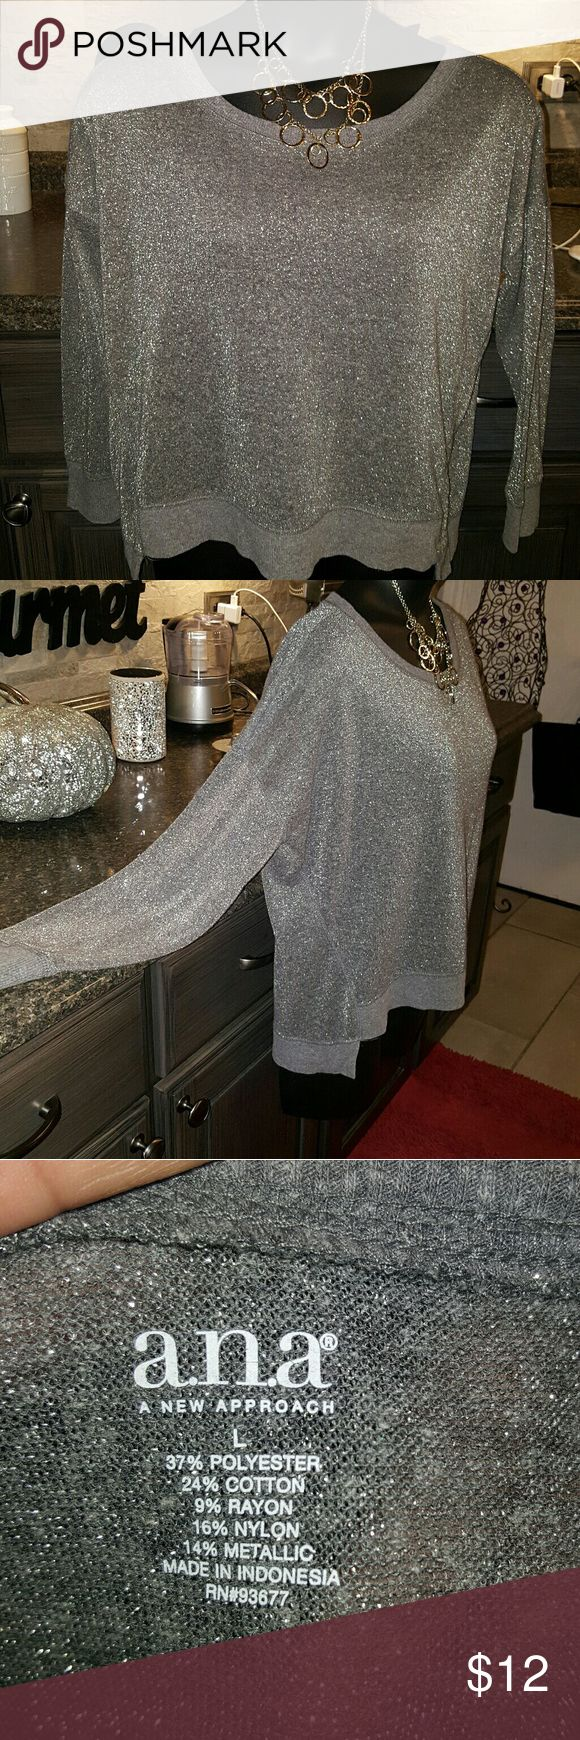 Shimmery metallic silver blouse. This blouse was worn a few times. Euc. Great with some black slack or black capris and some heels or cute flats. Ana Tops Blouses